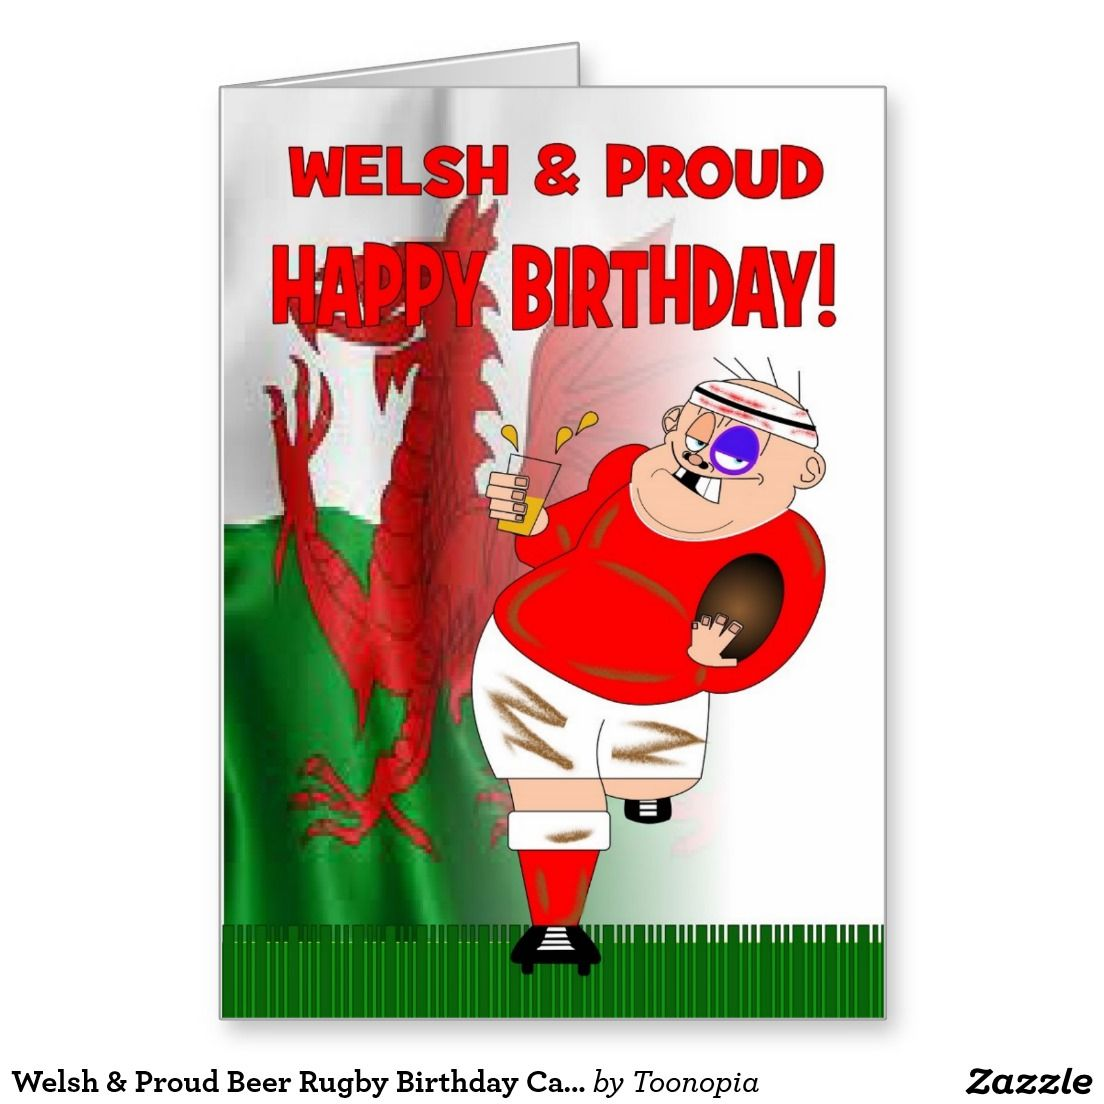 Welsh & Proud Beer Rugby Birthday Card Zazzle.co.uk